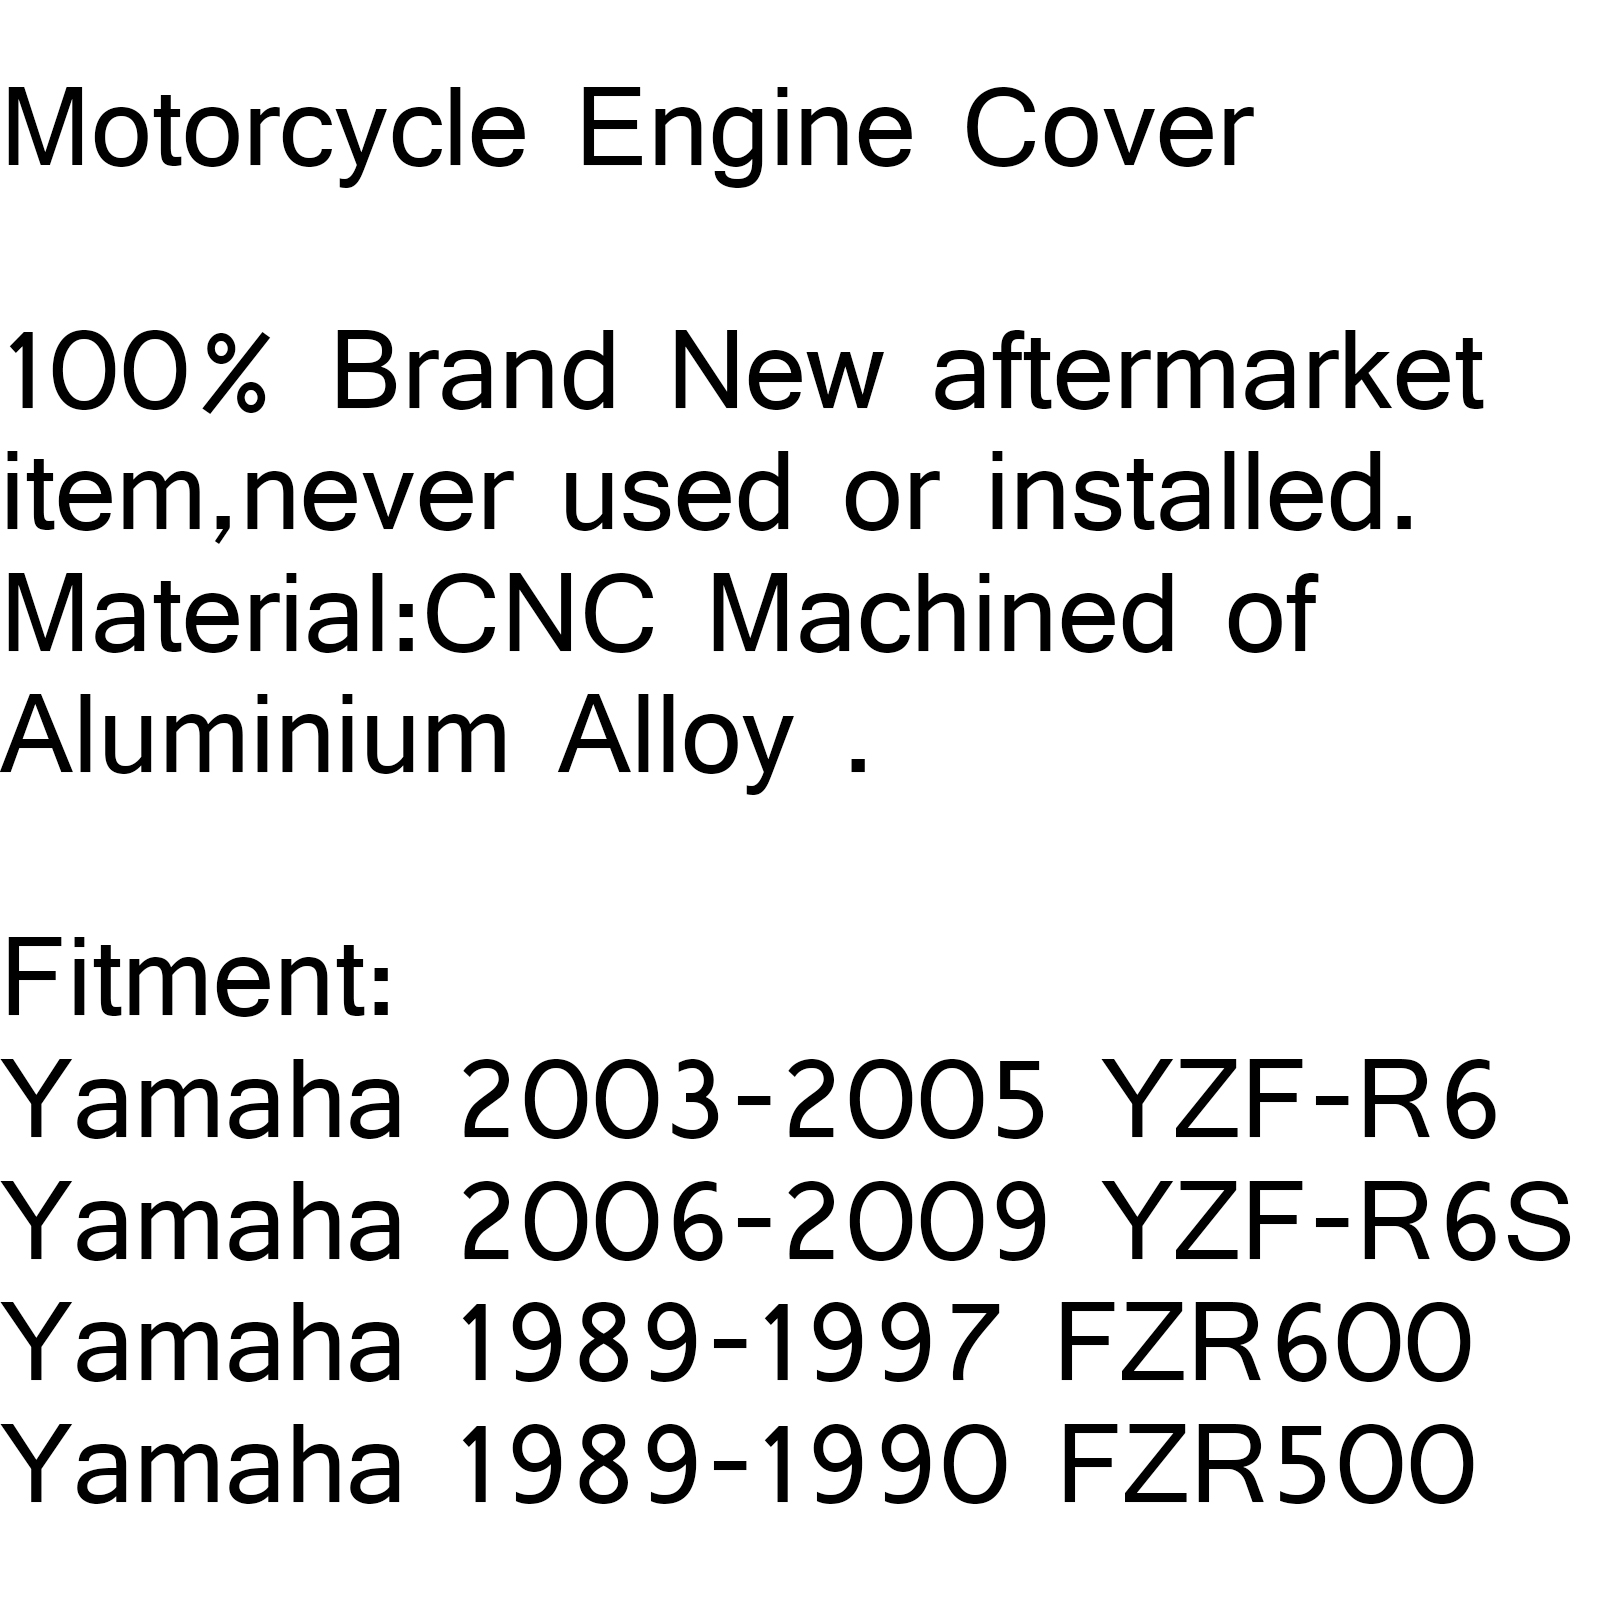 New Right Oil Pump Engine Cover For Yamaha YZF-R6 03-05